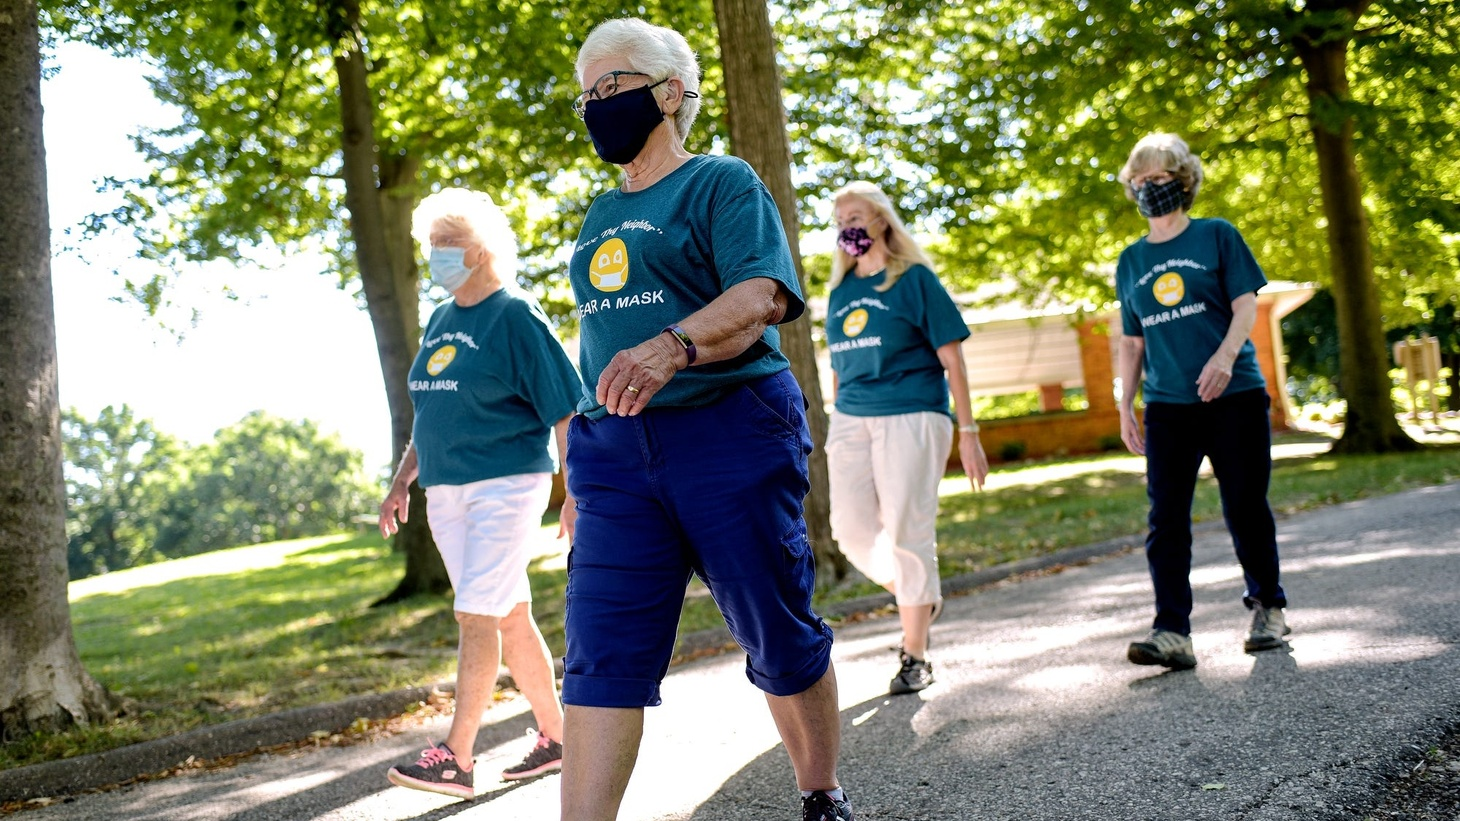 Sue Anderson, center, walks with a group of friends at St. Johns City Park on July 27, 2020. Anderson and the walking group are wearing shirts she is selling that suggest wearing a mask. The proceeds are being donated to a local needs center.